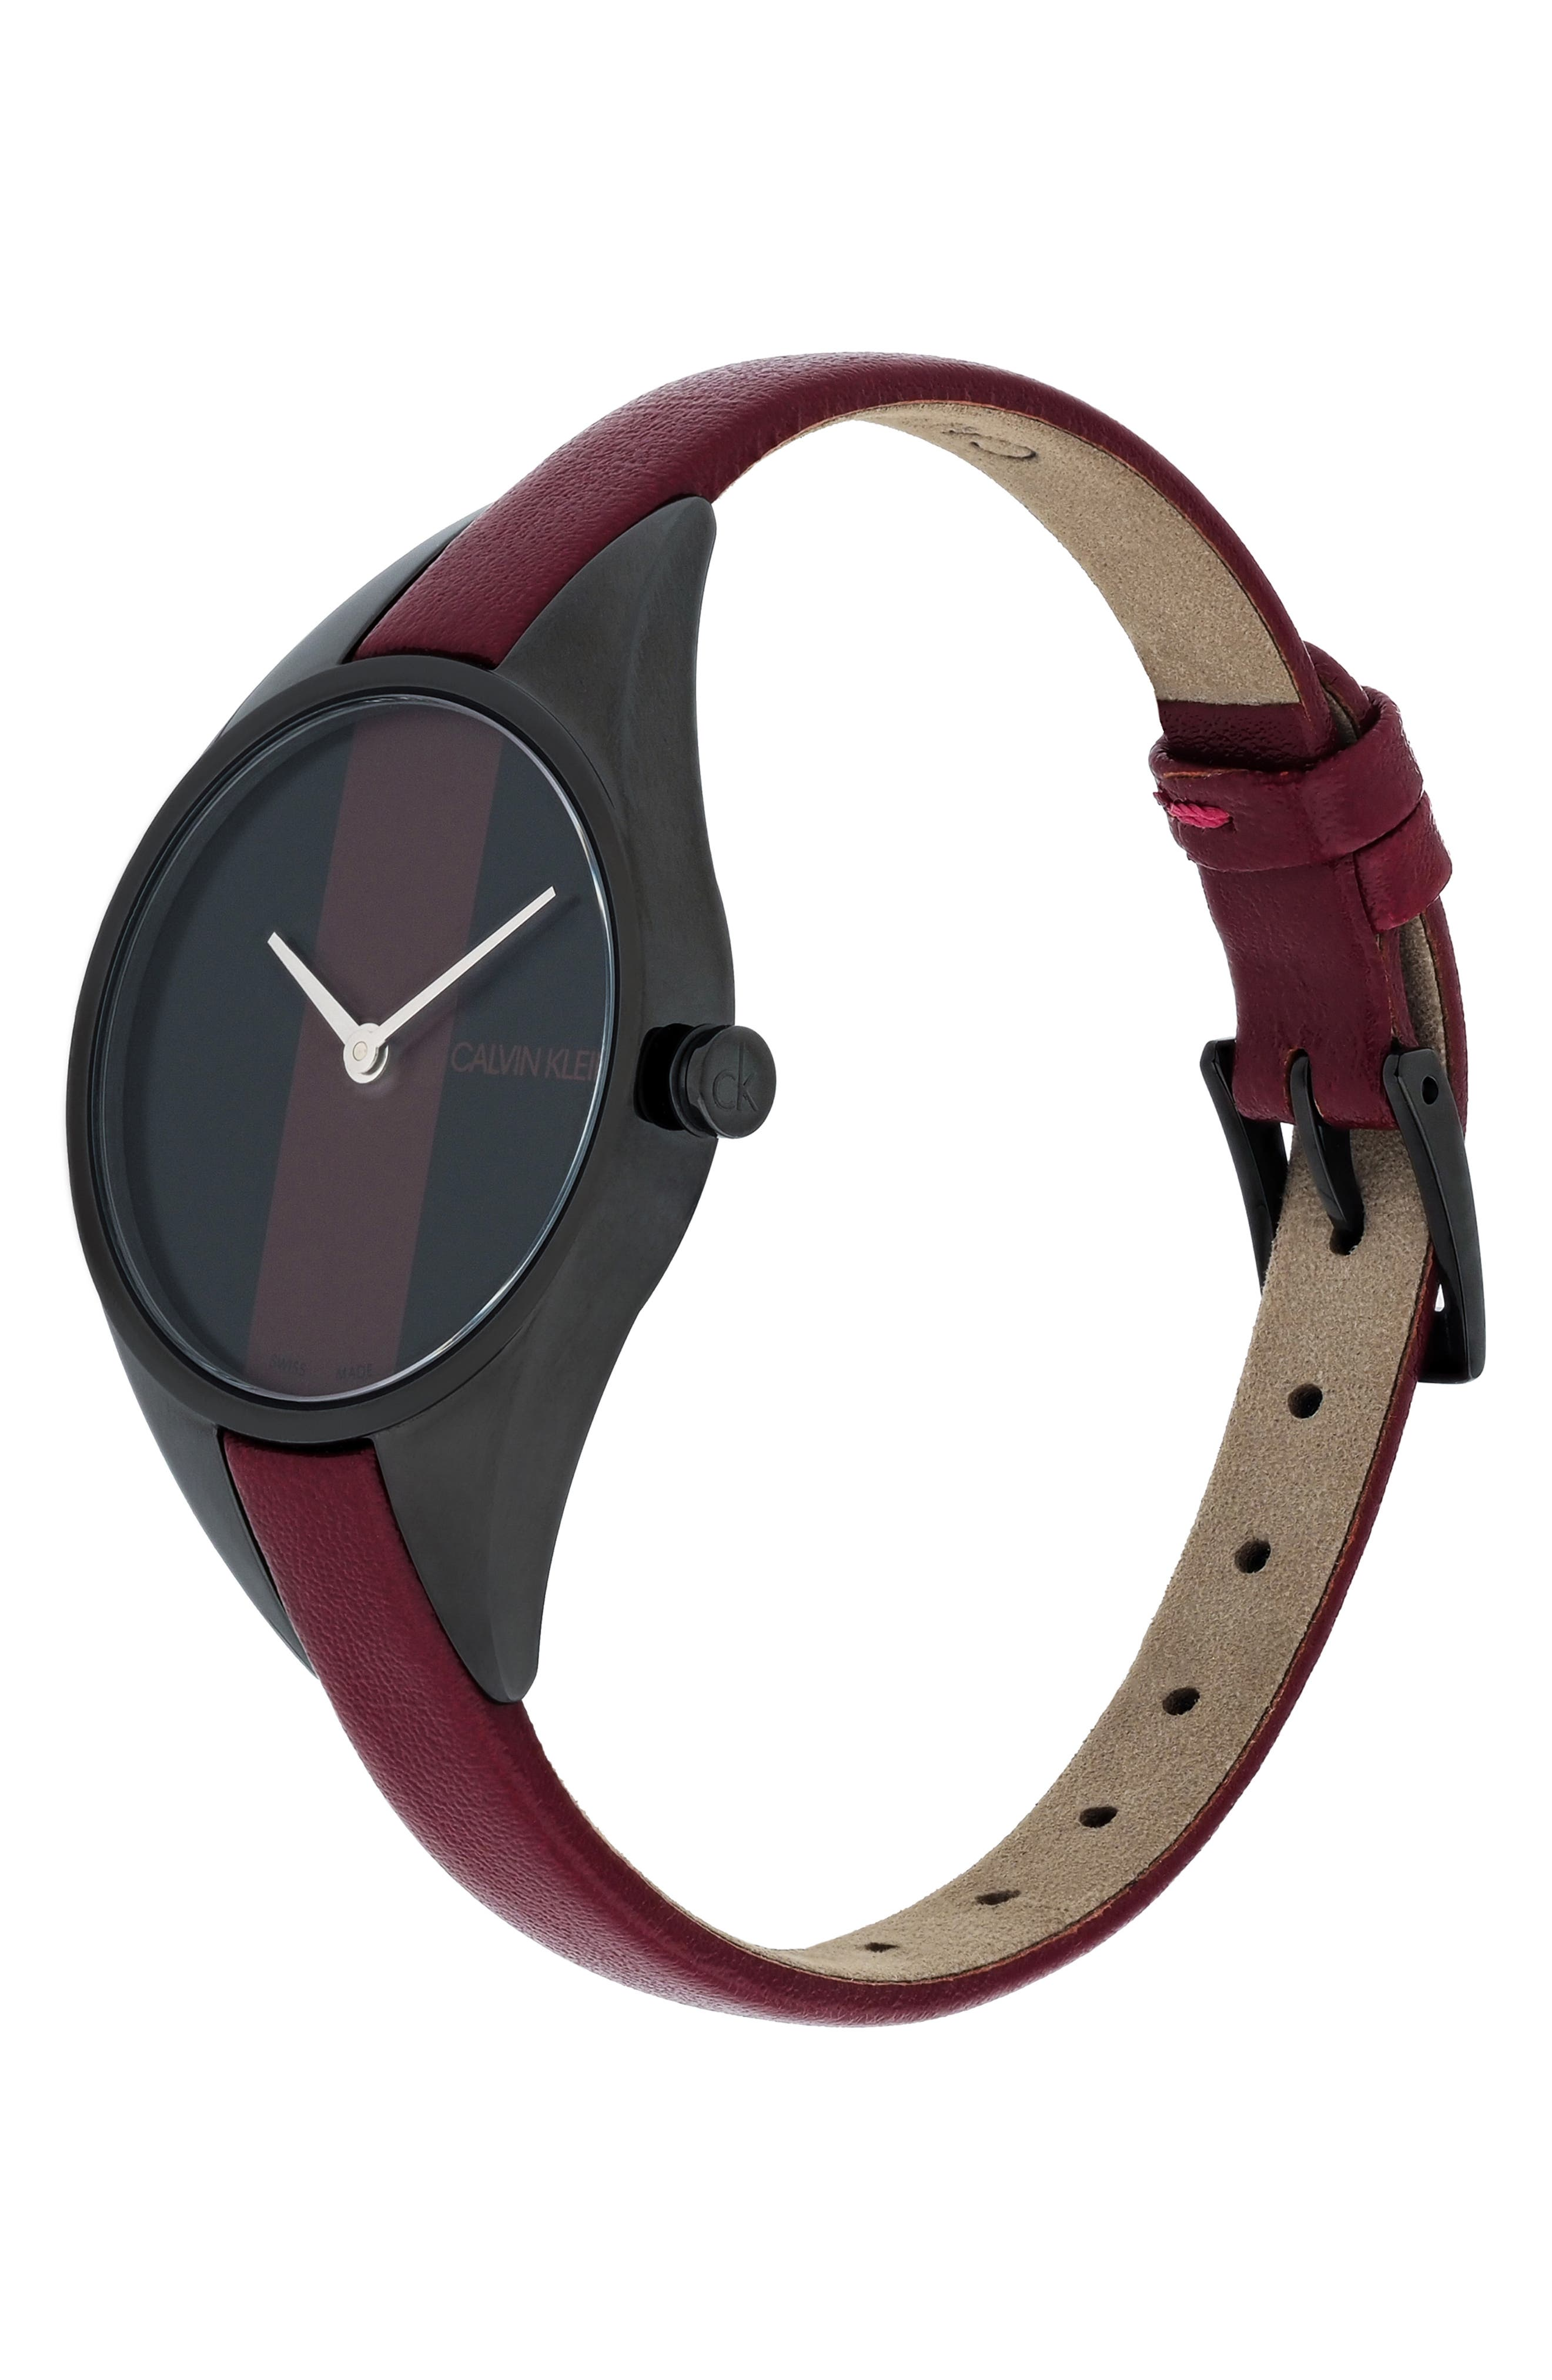 CALVIN KLEIN, Achieve Rebel Leather Band Watch, 29mm, Alternate thumbnail 4, color, RED/ BLACK